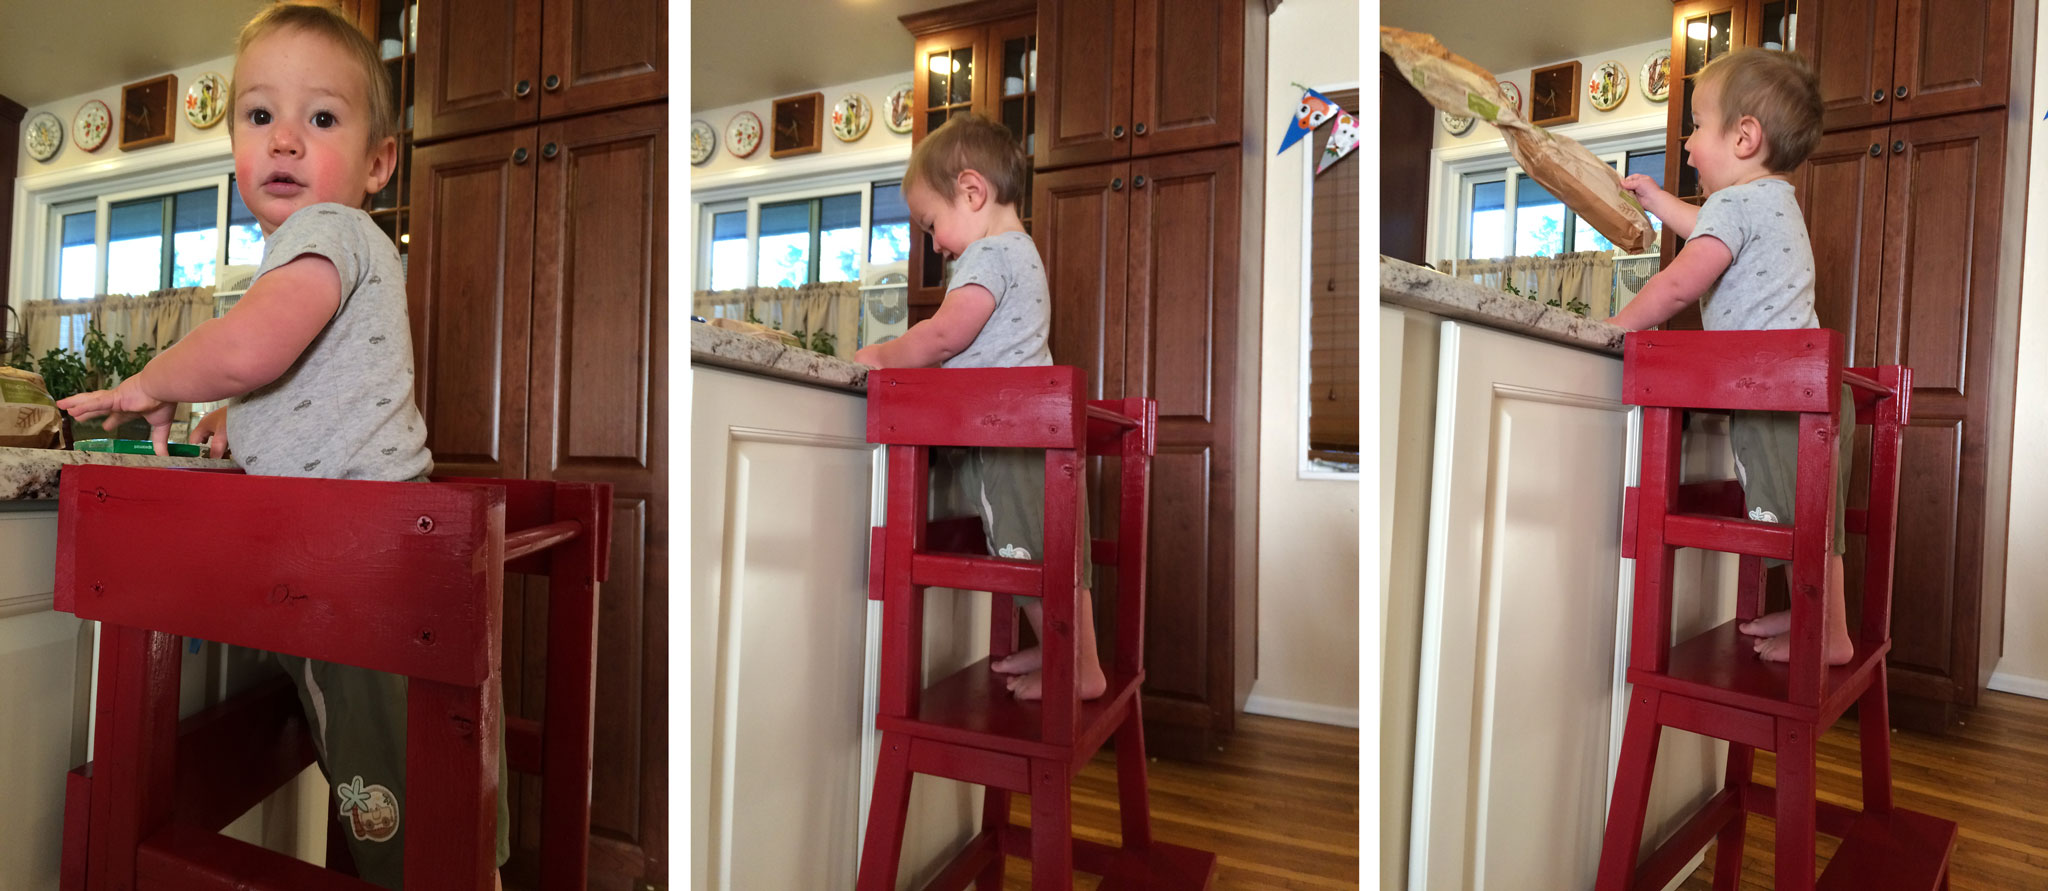 Our son immediately climbed into the learning tower and began playing with things on our kitchen island.